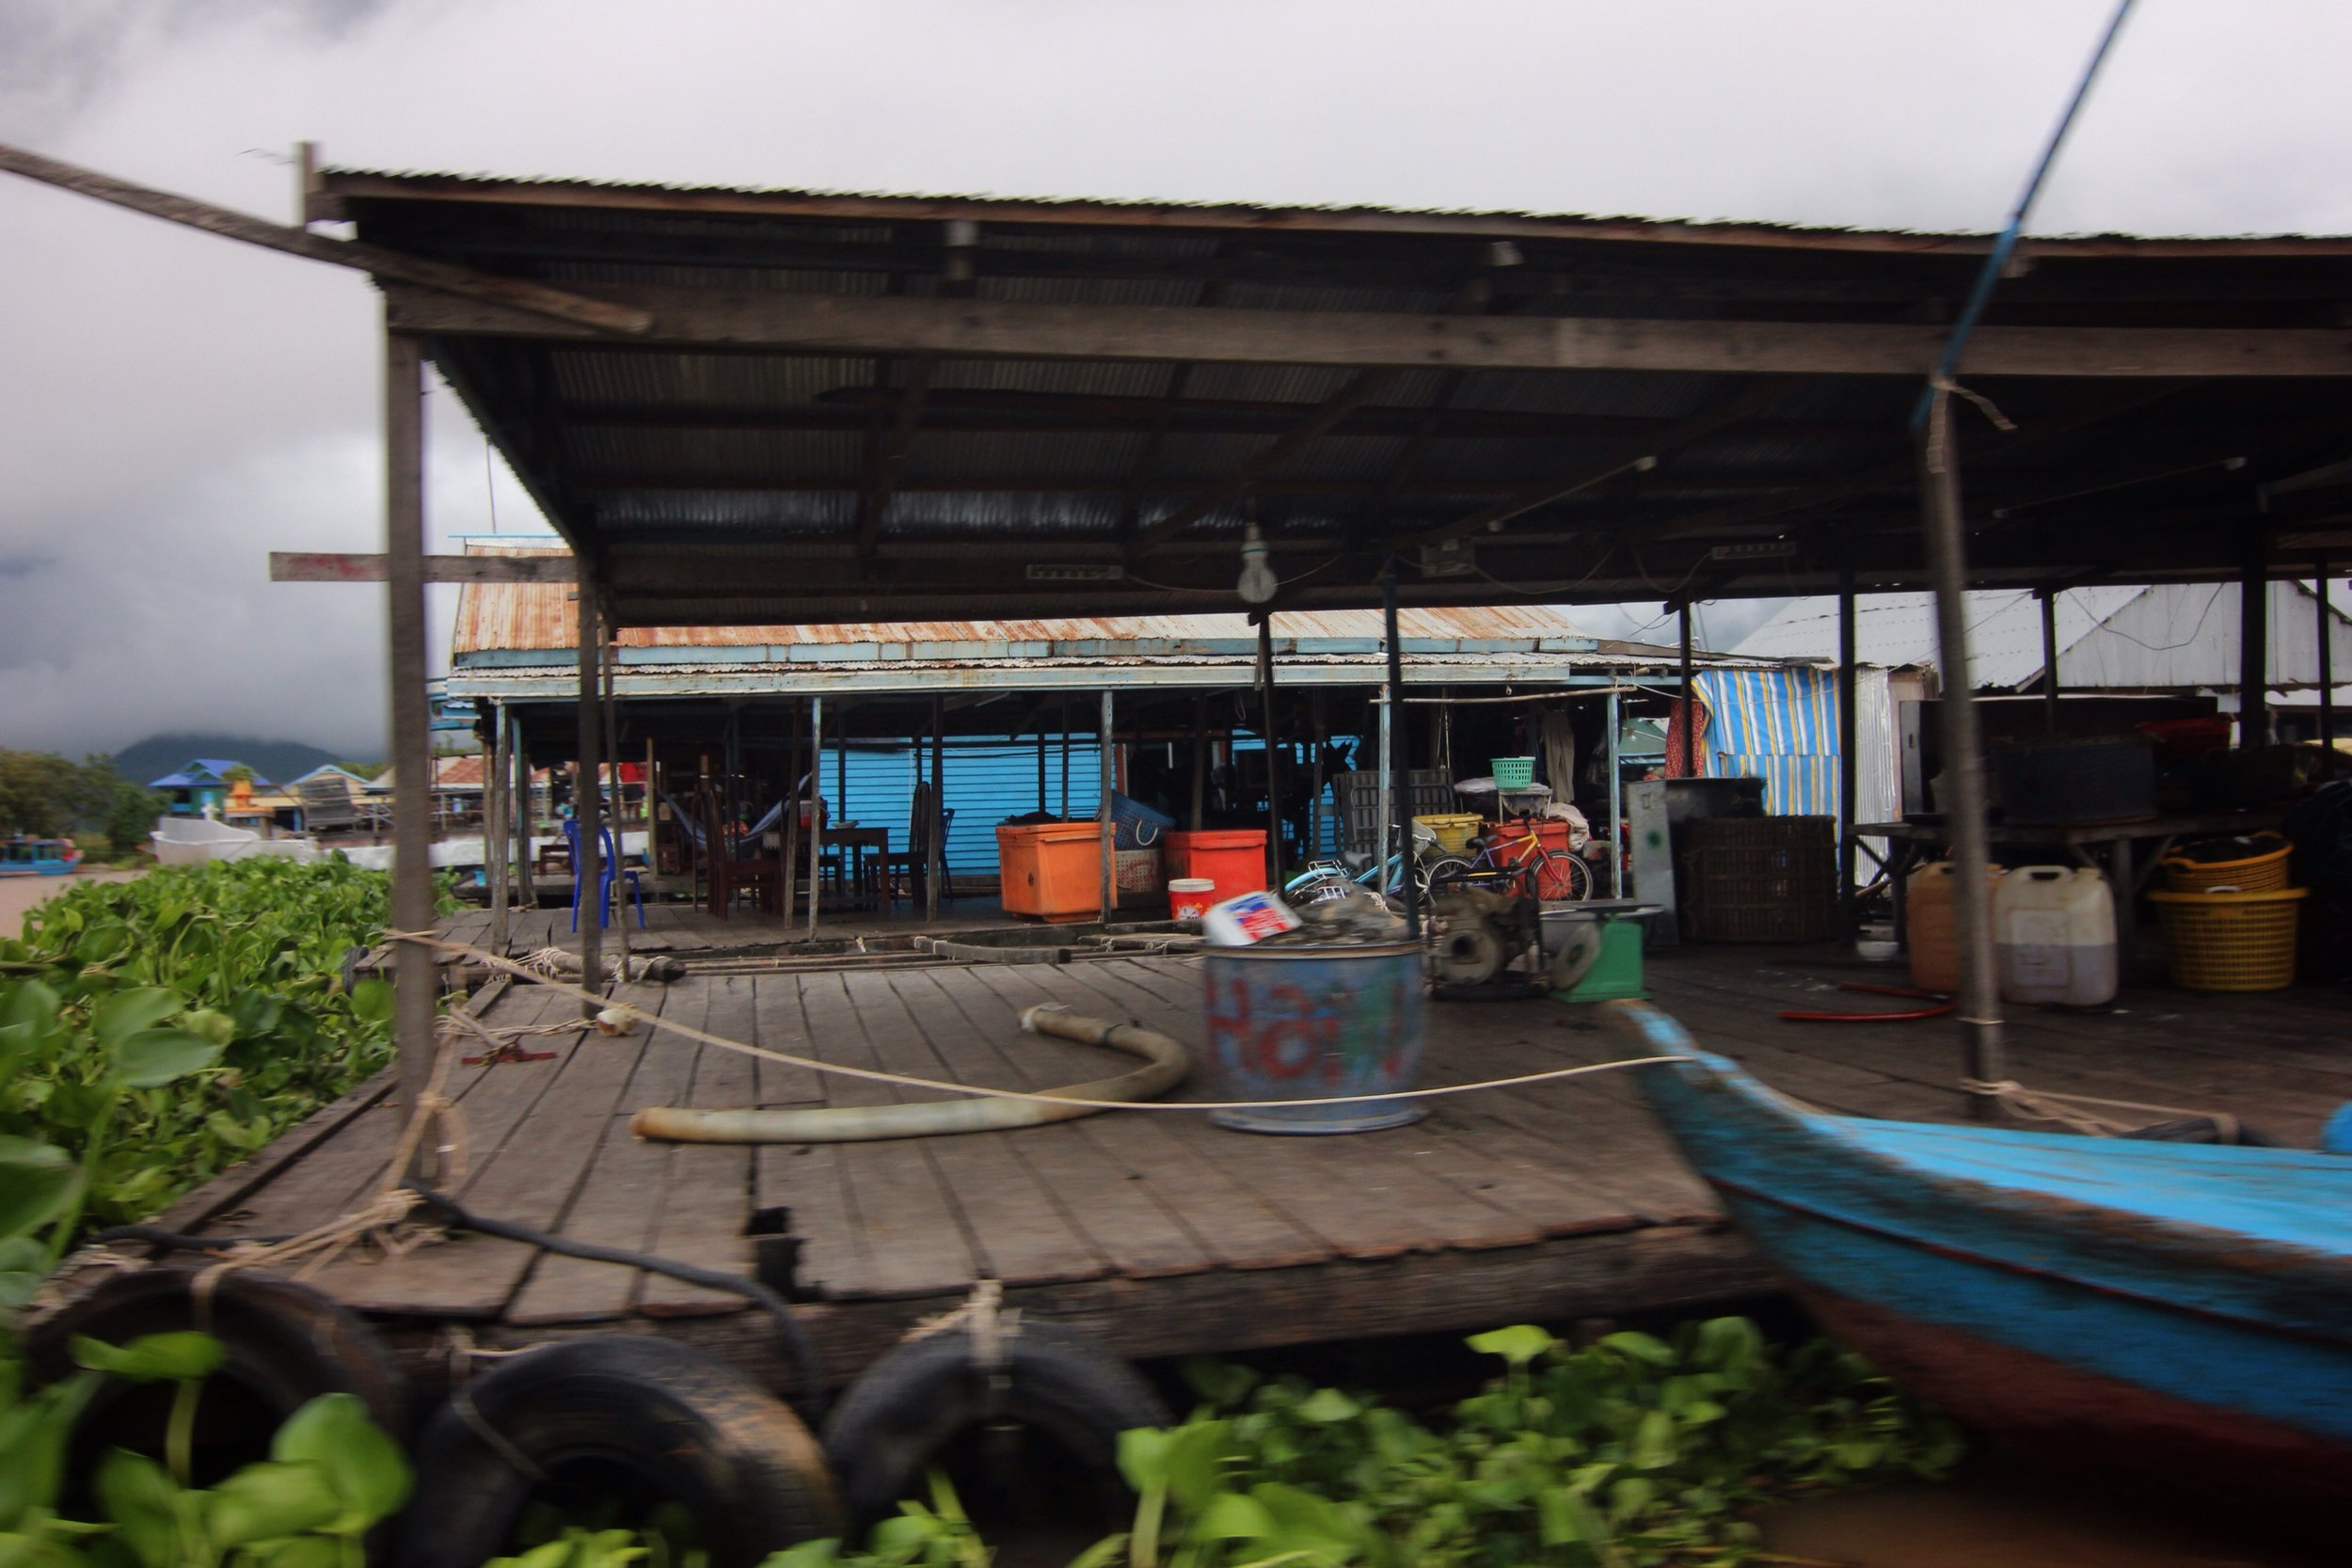 A scene from Chnok Tru, one of the largest floating villages on the Tonle Sap River.